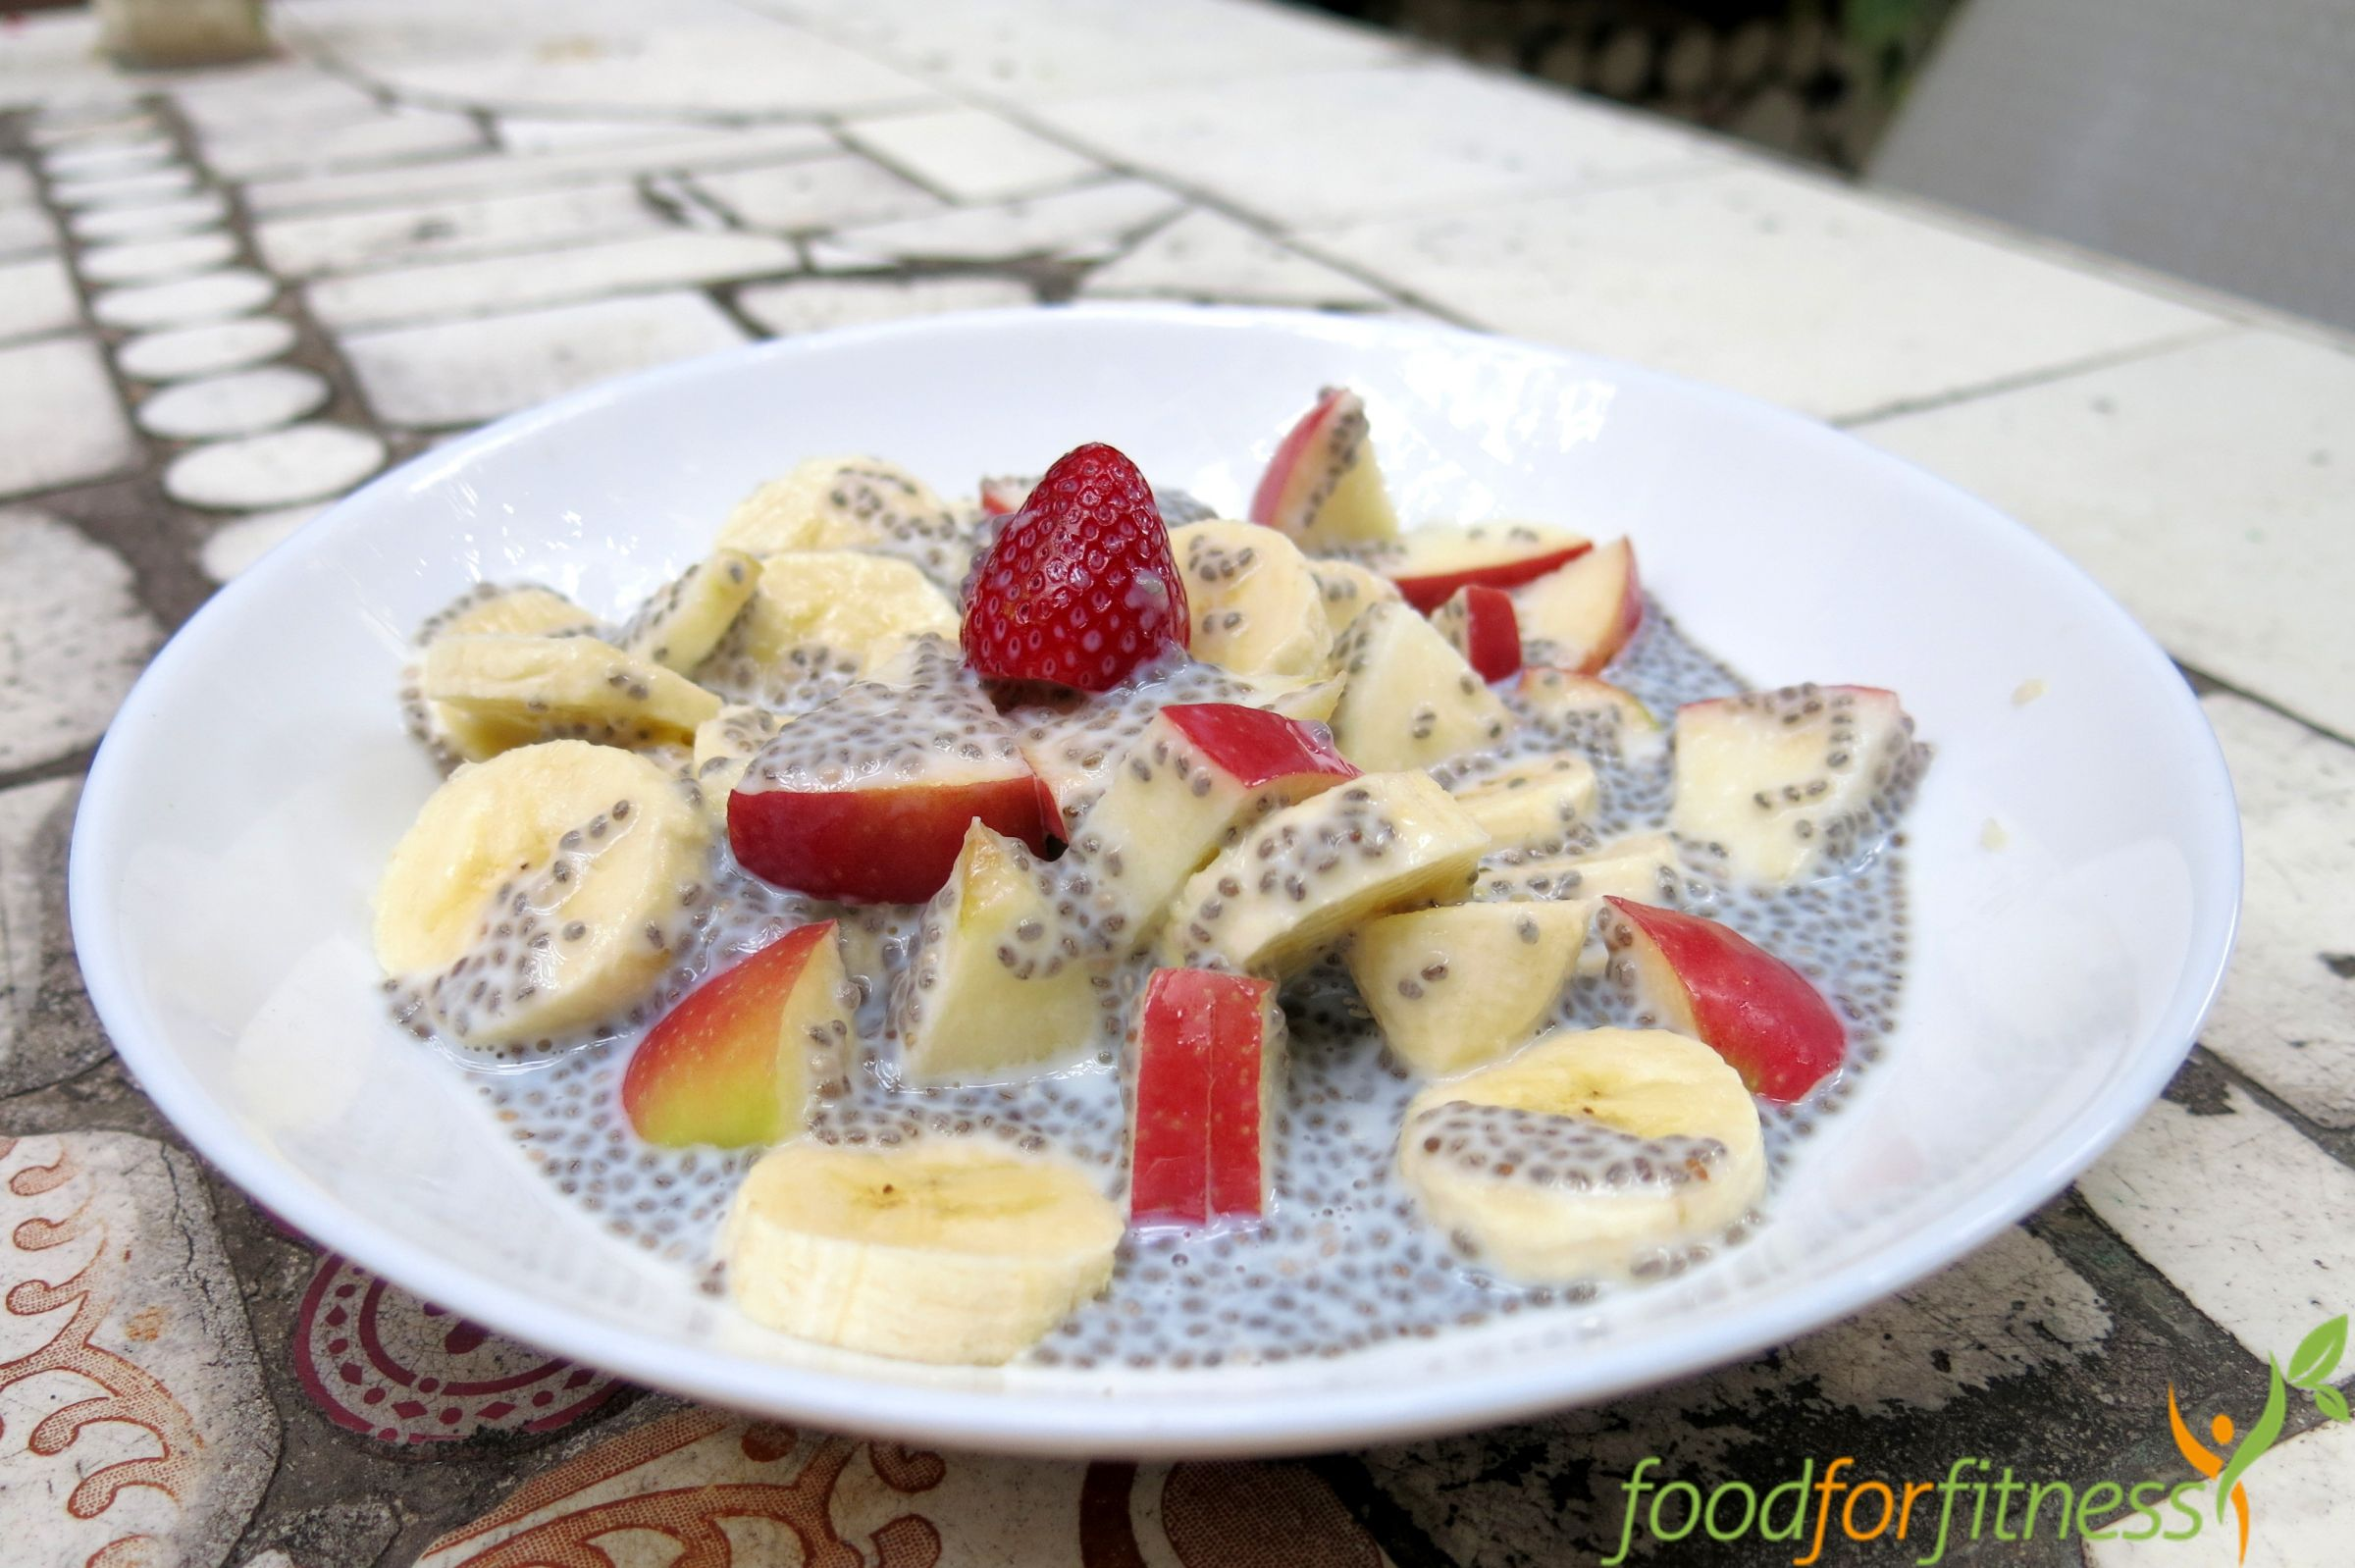 Chia Samen Rezepte Food For Fitness